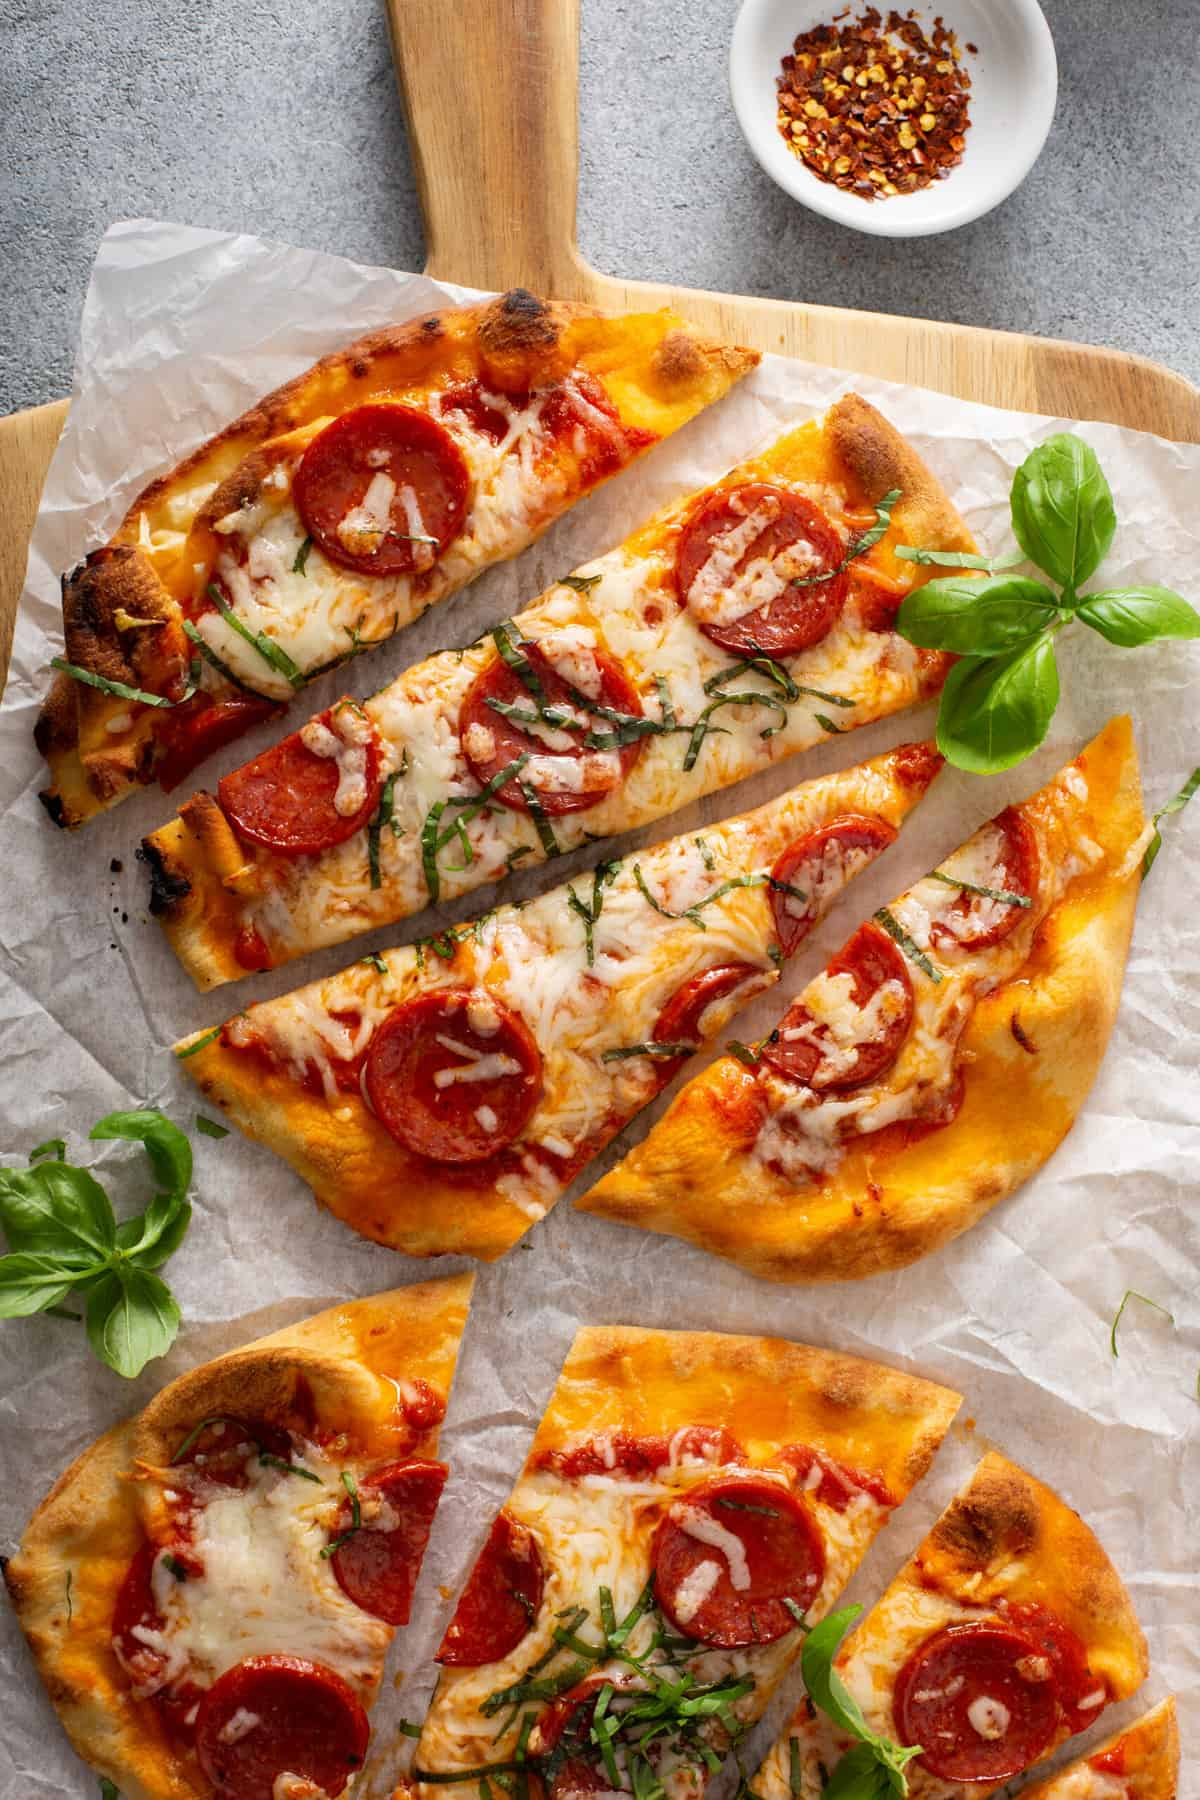 flatbread pizzas topped with pepperoni, cheese, and basil, on parchment paper, on a wood cutting board